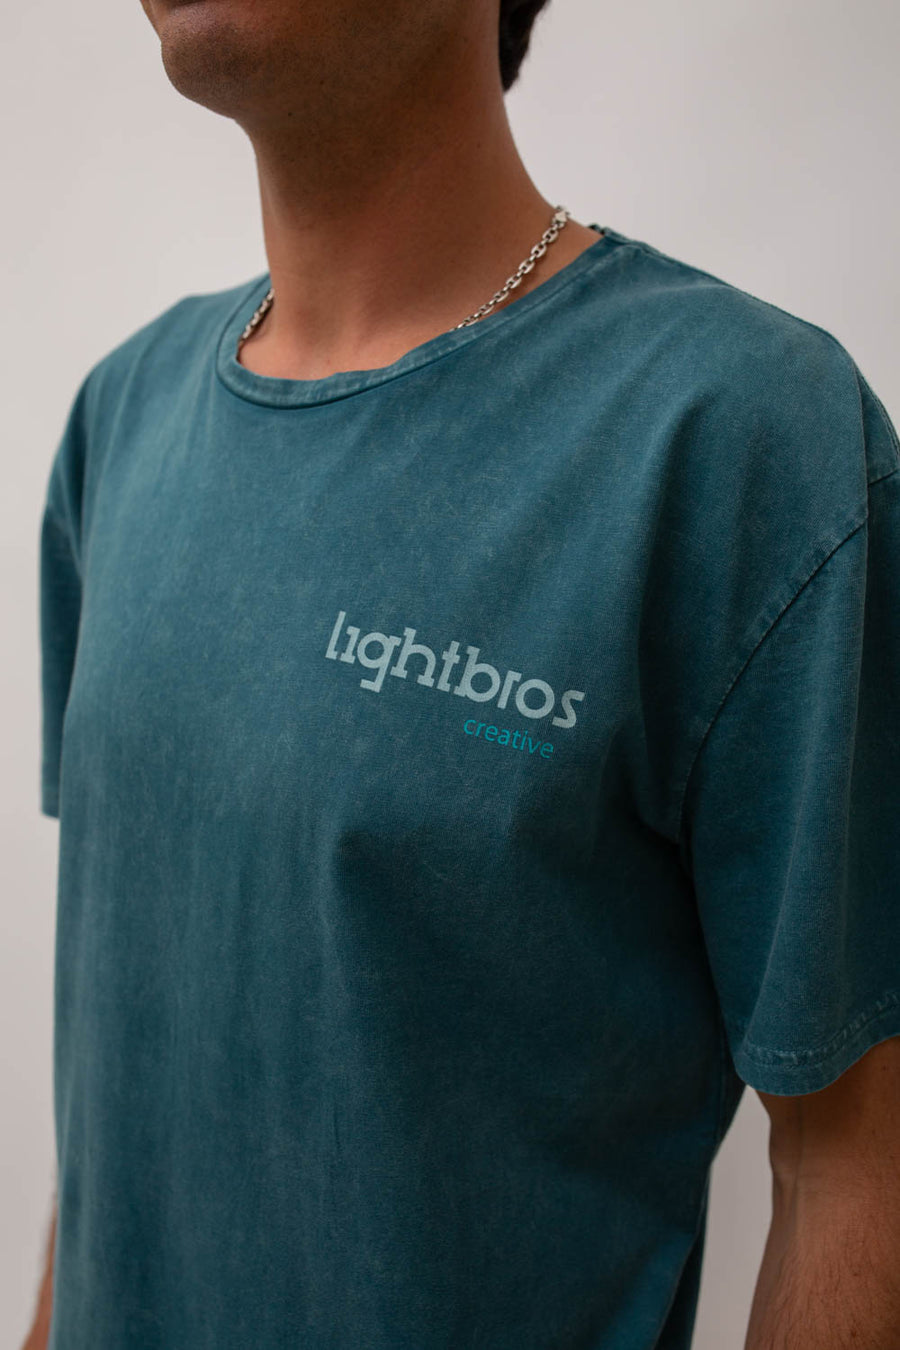 Camiseta Lightbros